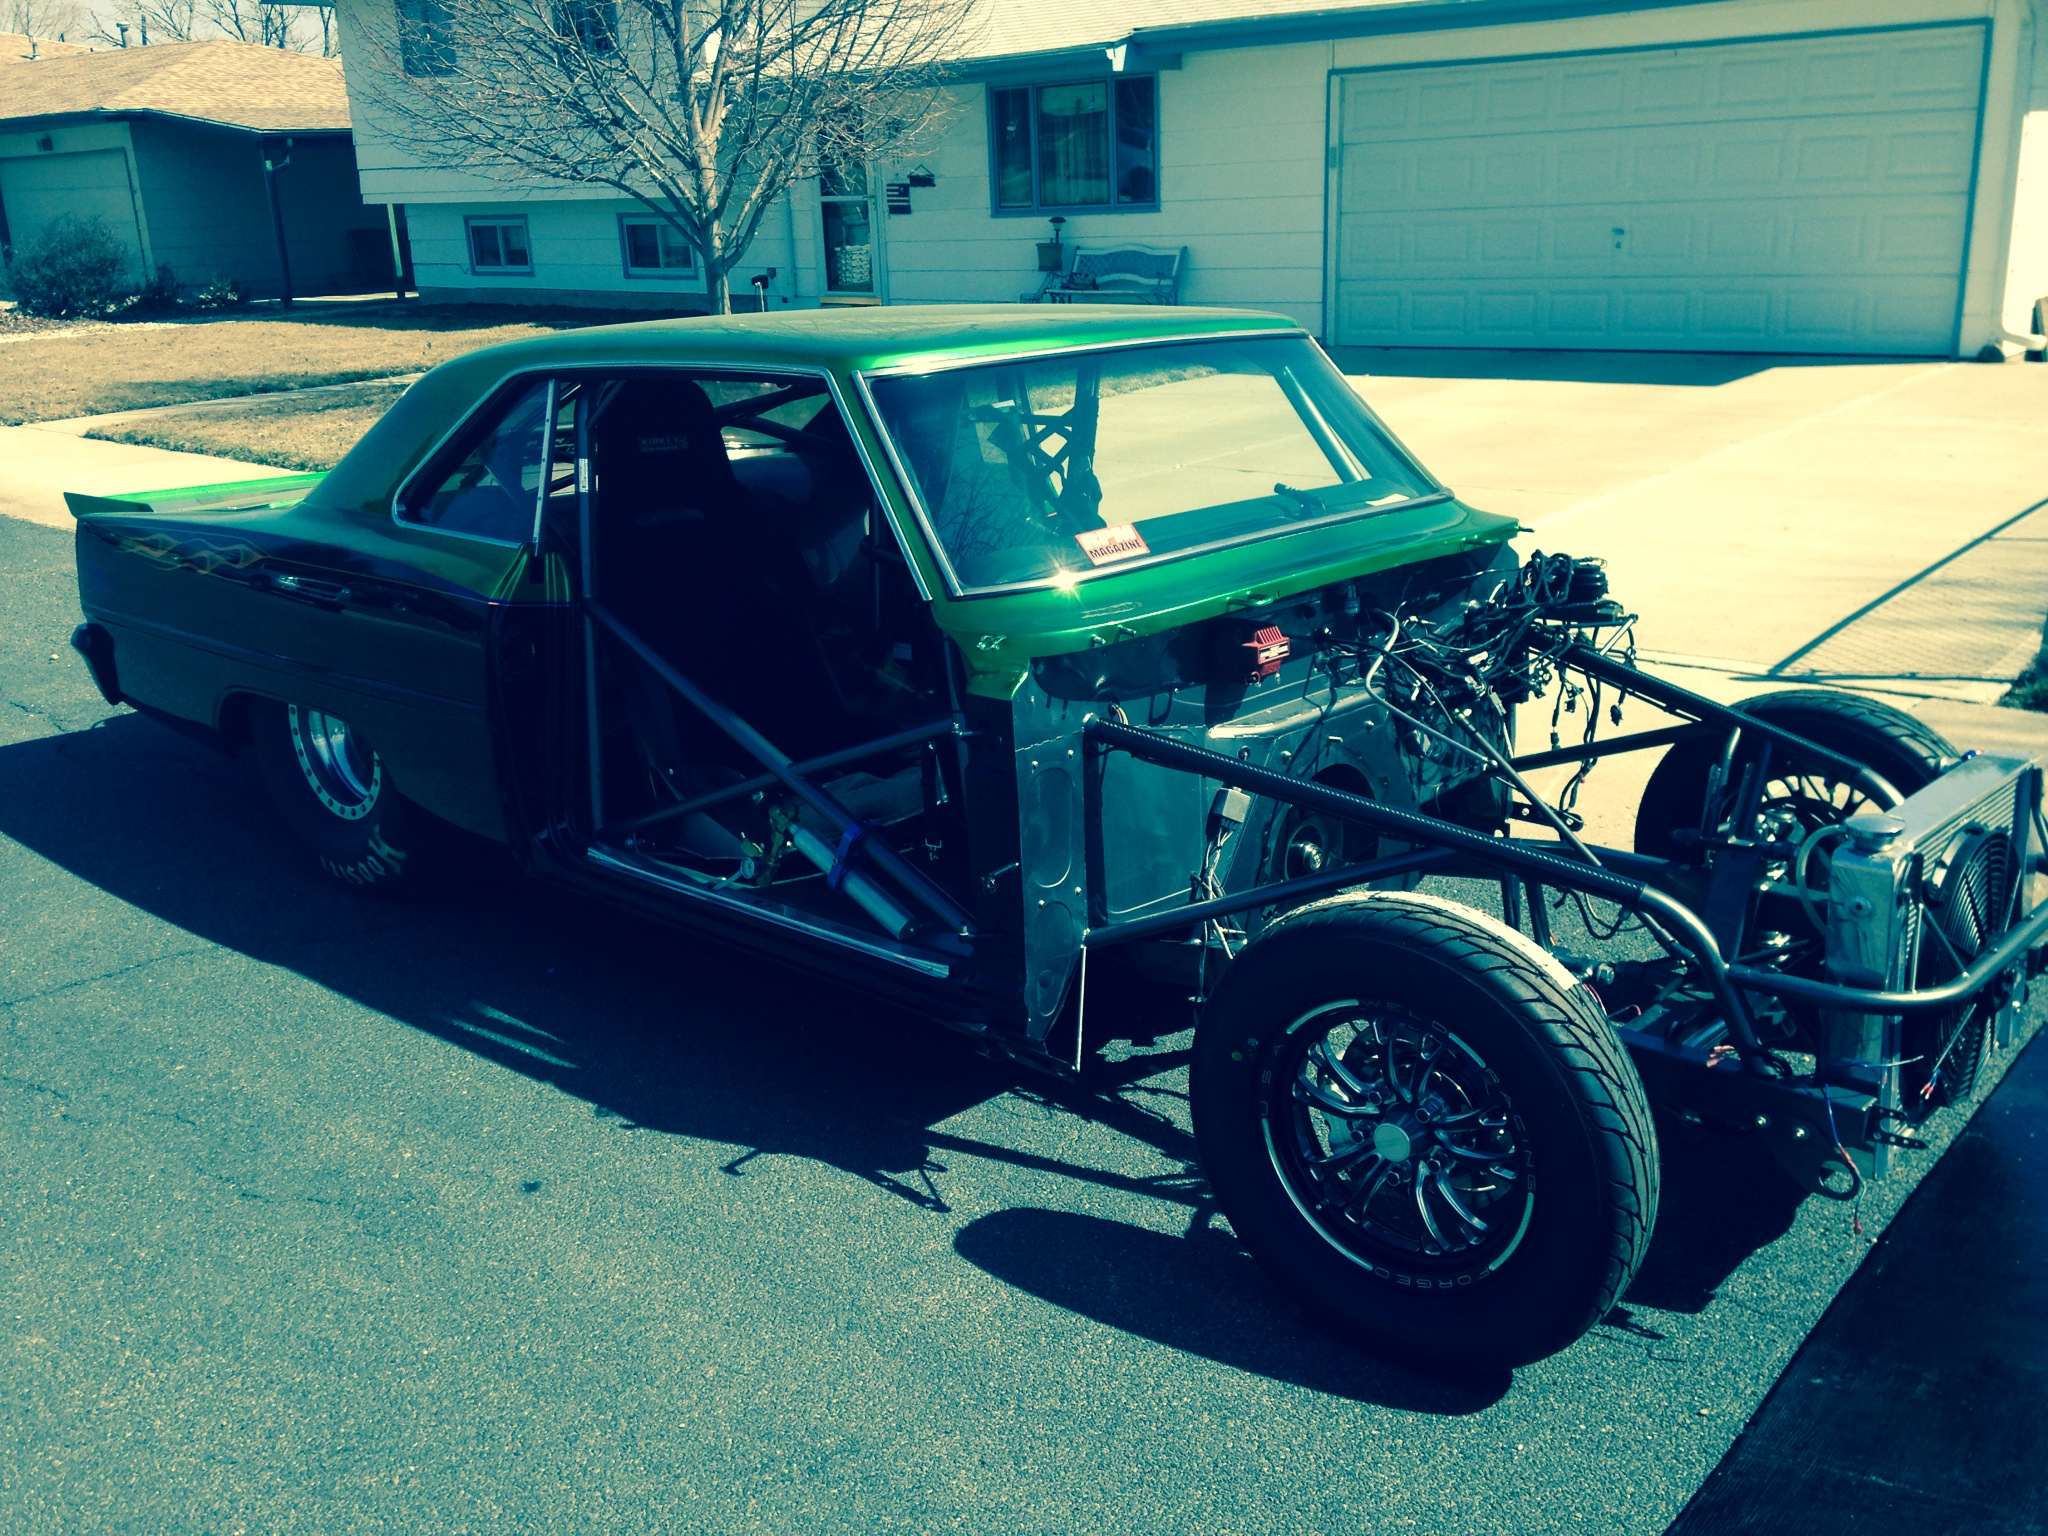 Matt Frost's Drag Week Nova Project Looks And Sounds Like Serious Business – Will It Be Done In Time?